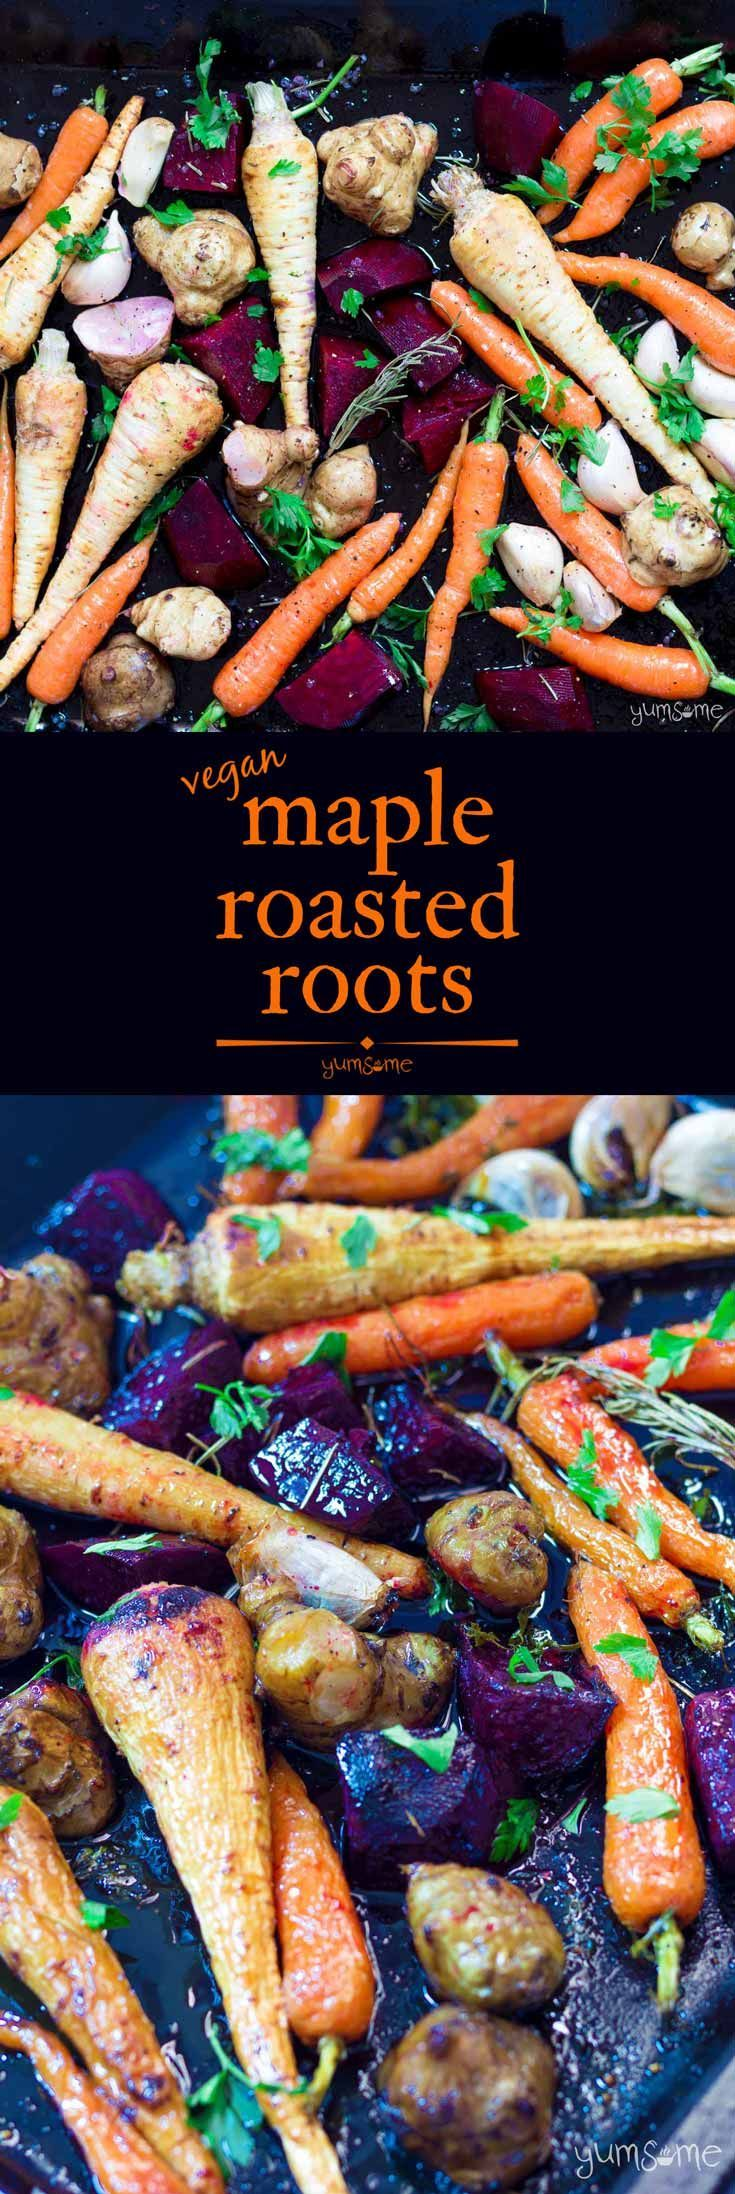 No #roast #dinner is complete without a goodly pile of roast #veggies, right? And there's little more goodly than these #vegan #maple roasted #root #vegetables. Bung 'em in the oven, and then in your tummy - you won't be disappointed! | yumsome.com via @yums0me